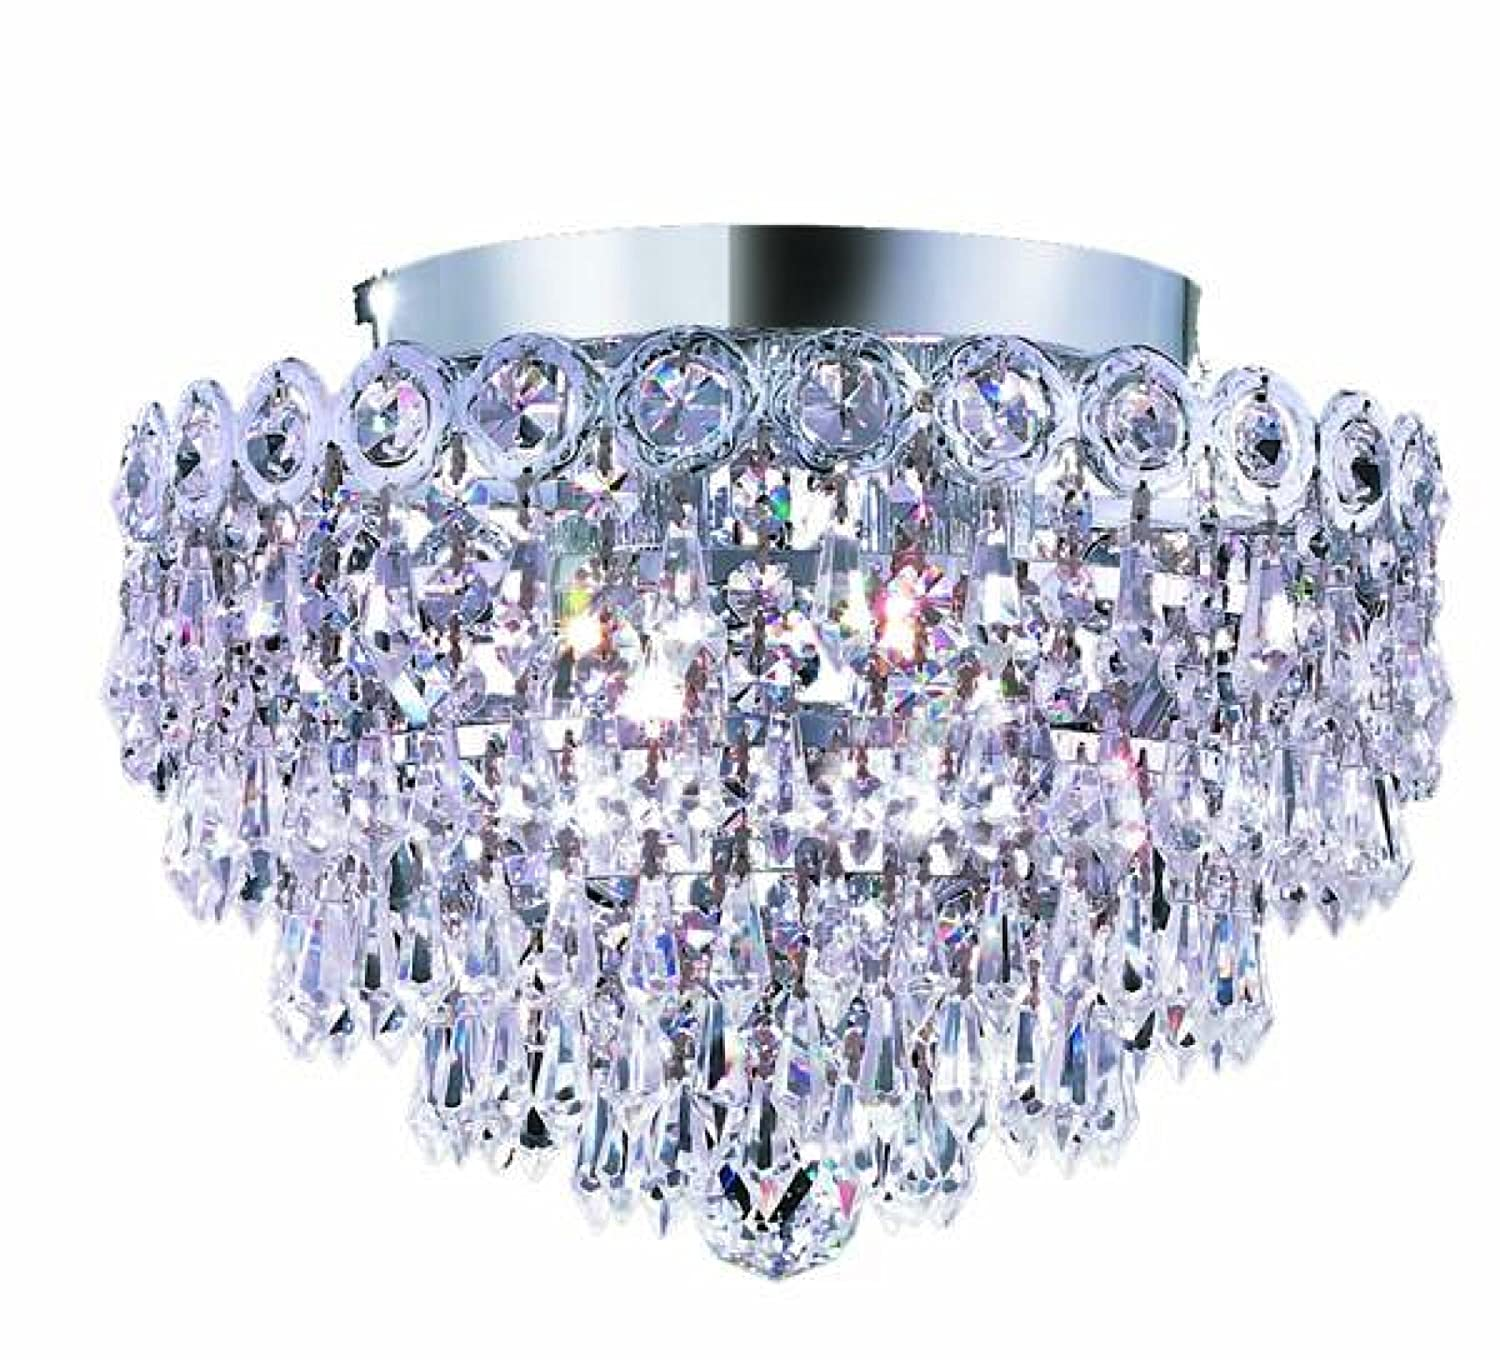 Elegant lighting 1902f12grc century 10 inch high 4 light flush elegant lighting 1902f12grc century 10 inch high 4 light flush mount gold finish with crystal clear royal cut rc crystal chandeliers amazon arubaitofo Choice Image